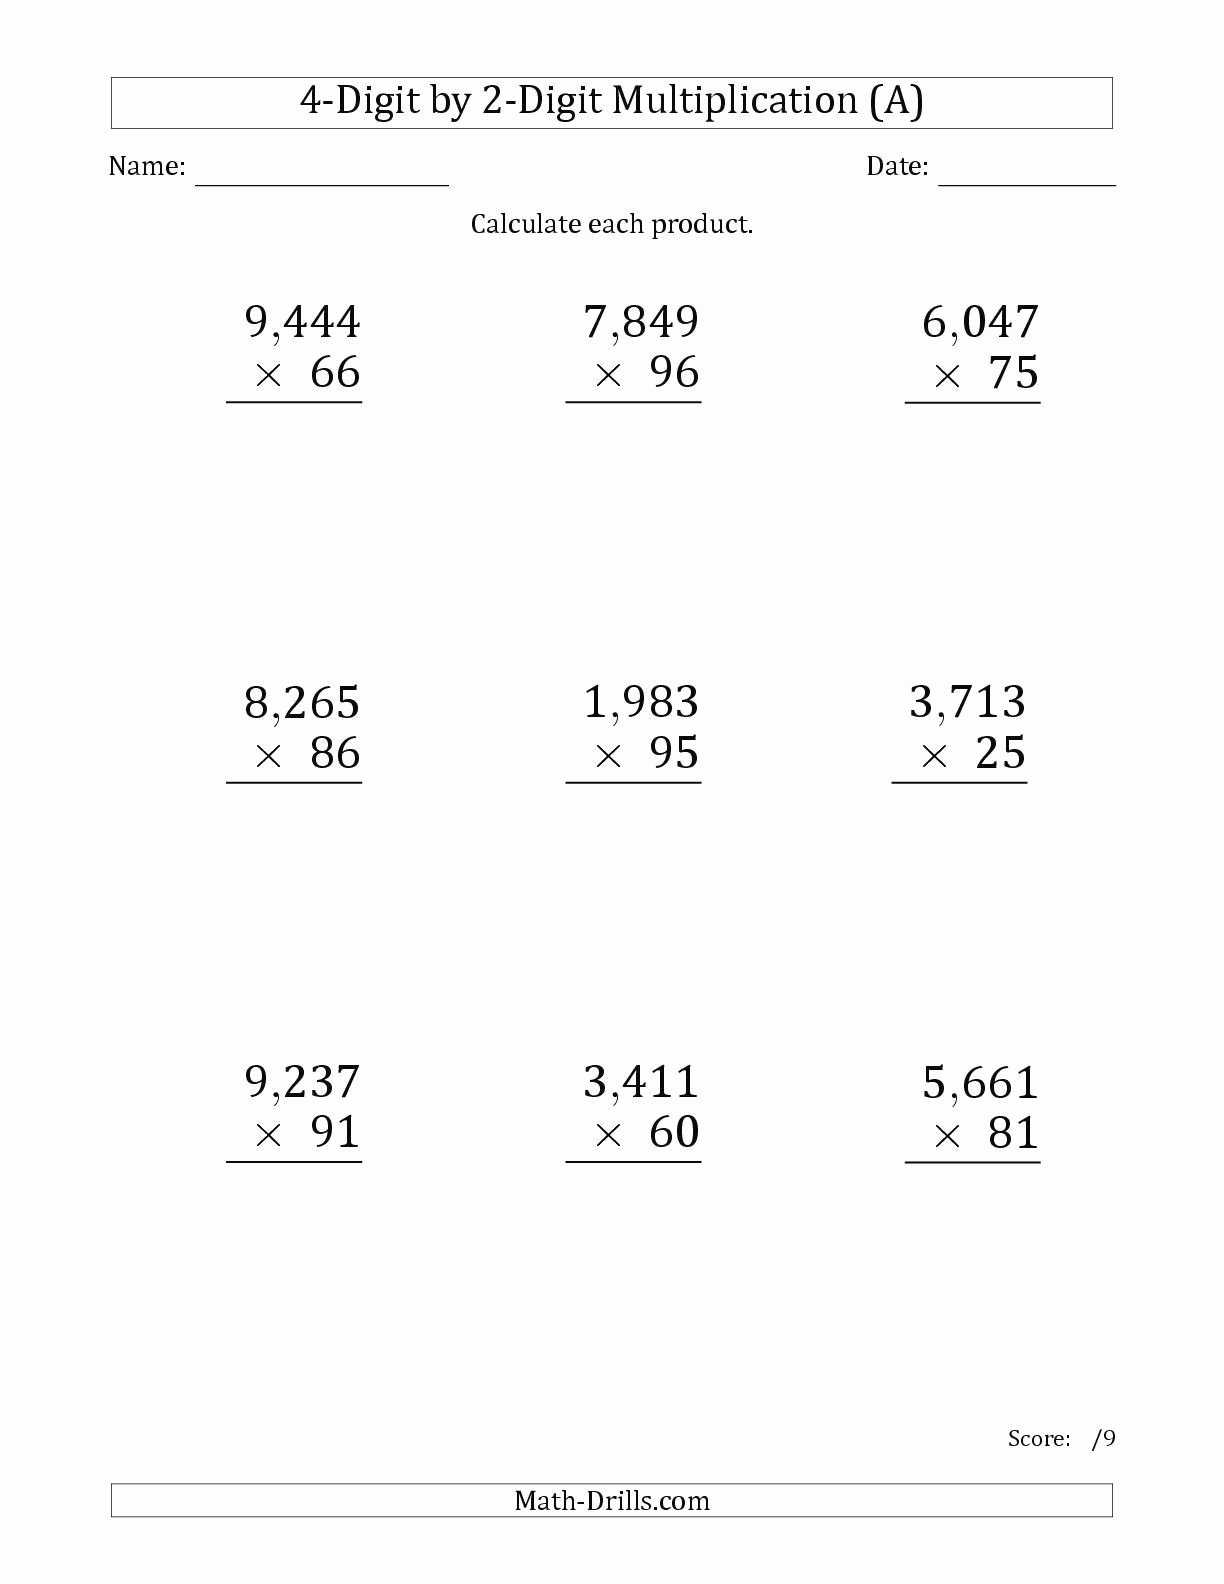 5th Grade Multiplication Worksheets Printable Awesome 5th Grade Multiplication Worksheets for Printable 5th Grade